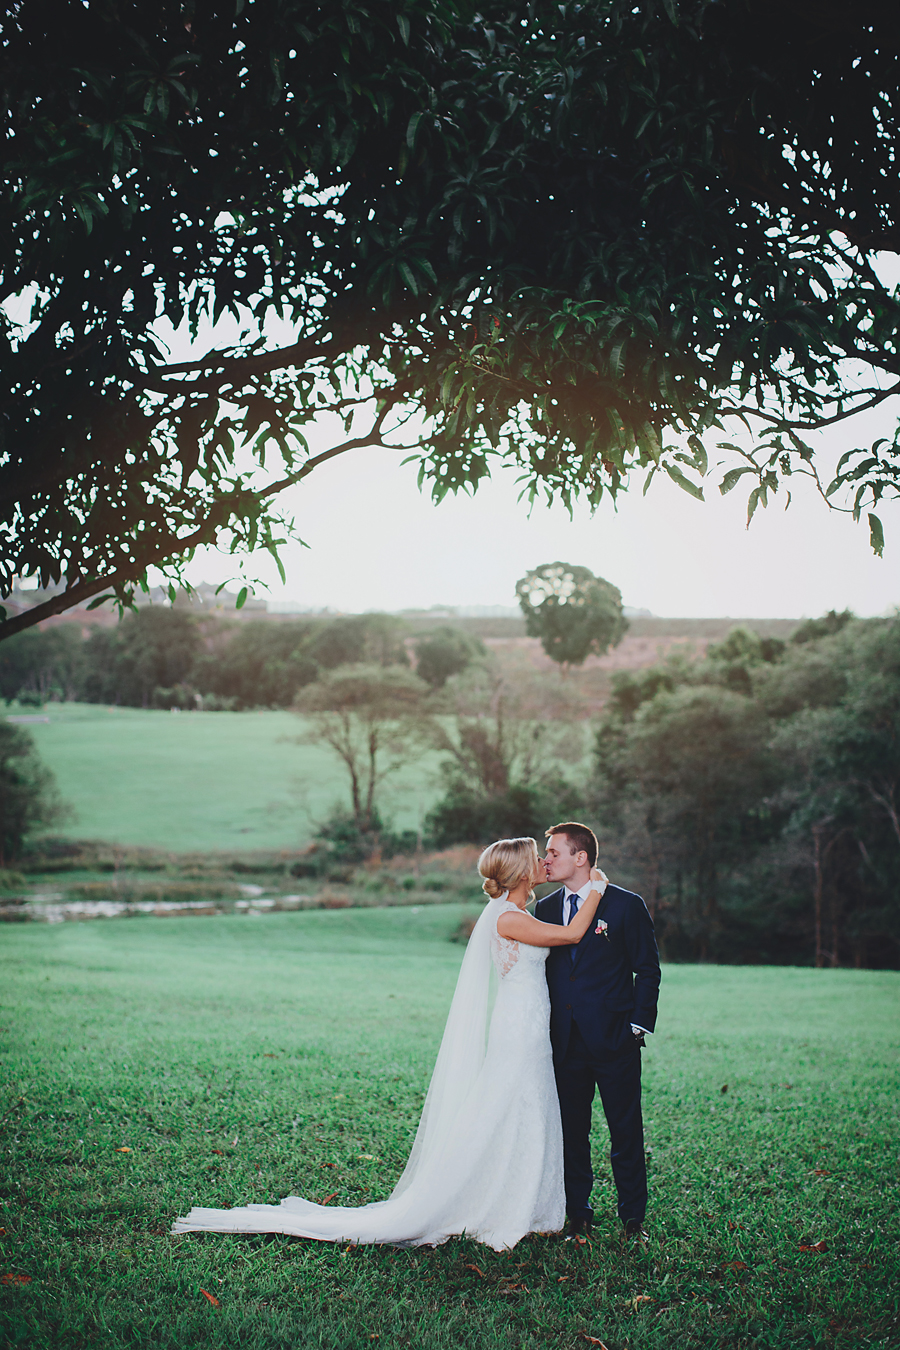 Figtree-restaurant-wedding-photography096